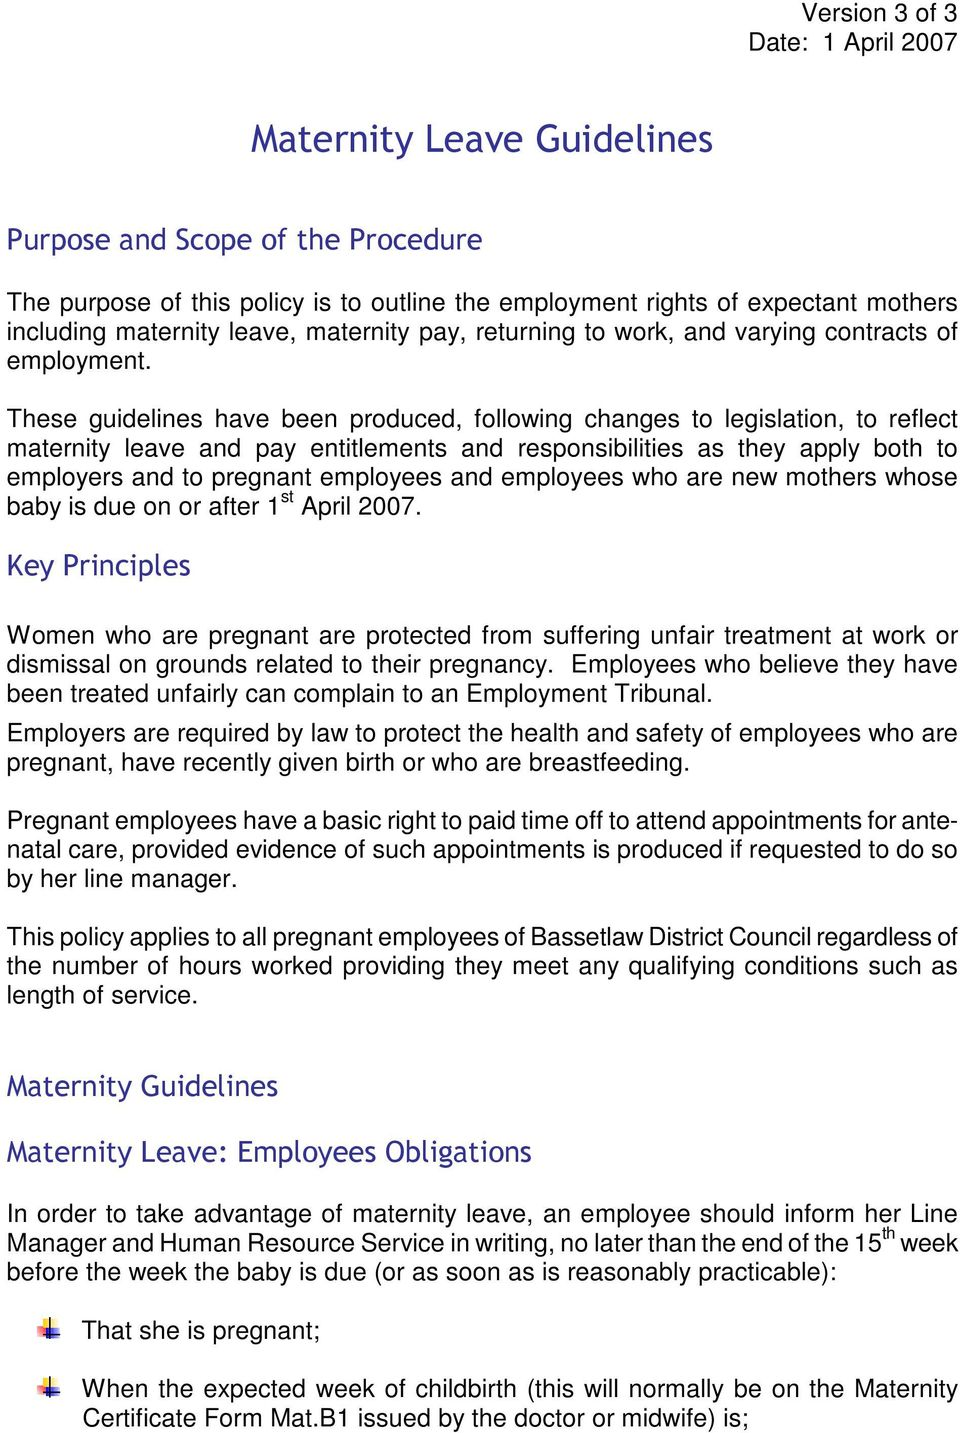 These guidelines have been produced, following changes to legislation, to reflect maternity leave and pay entitlements and responsibilities as they apply both to employers and to pregnant employees